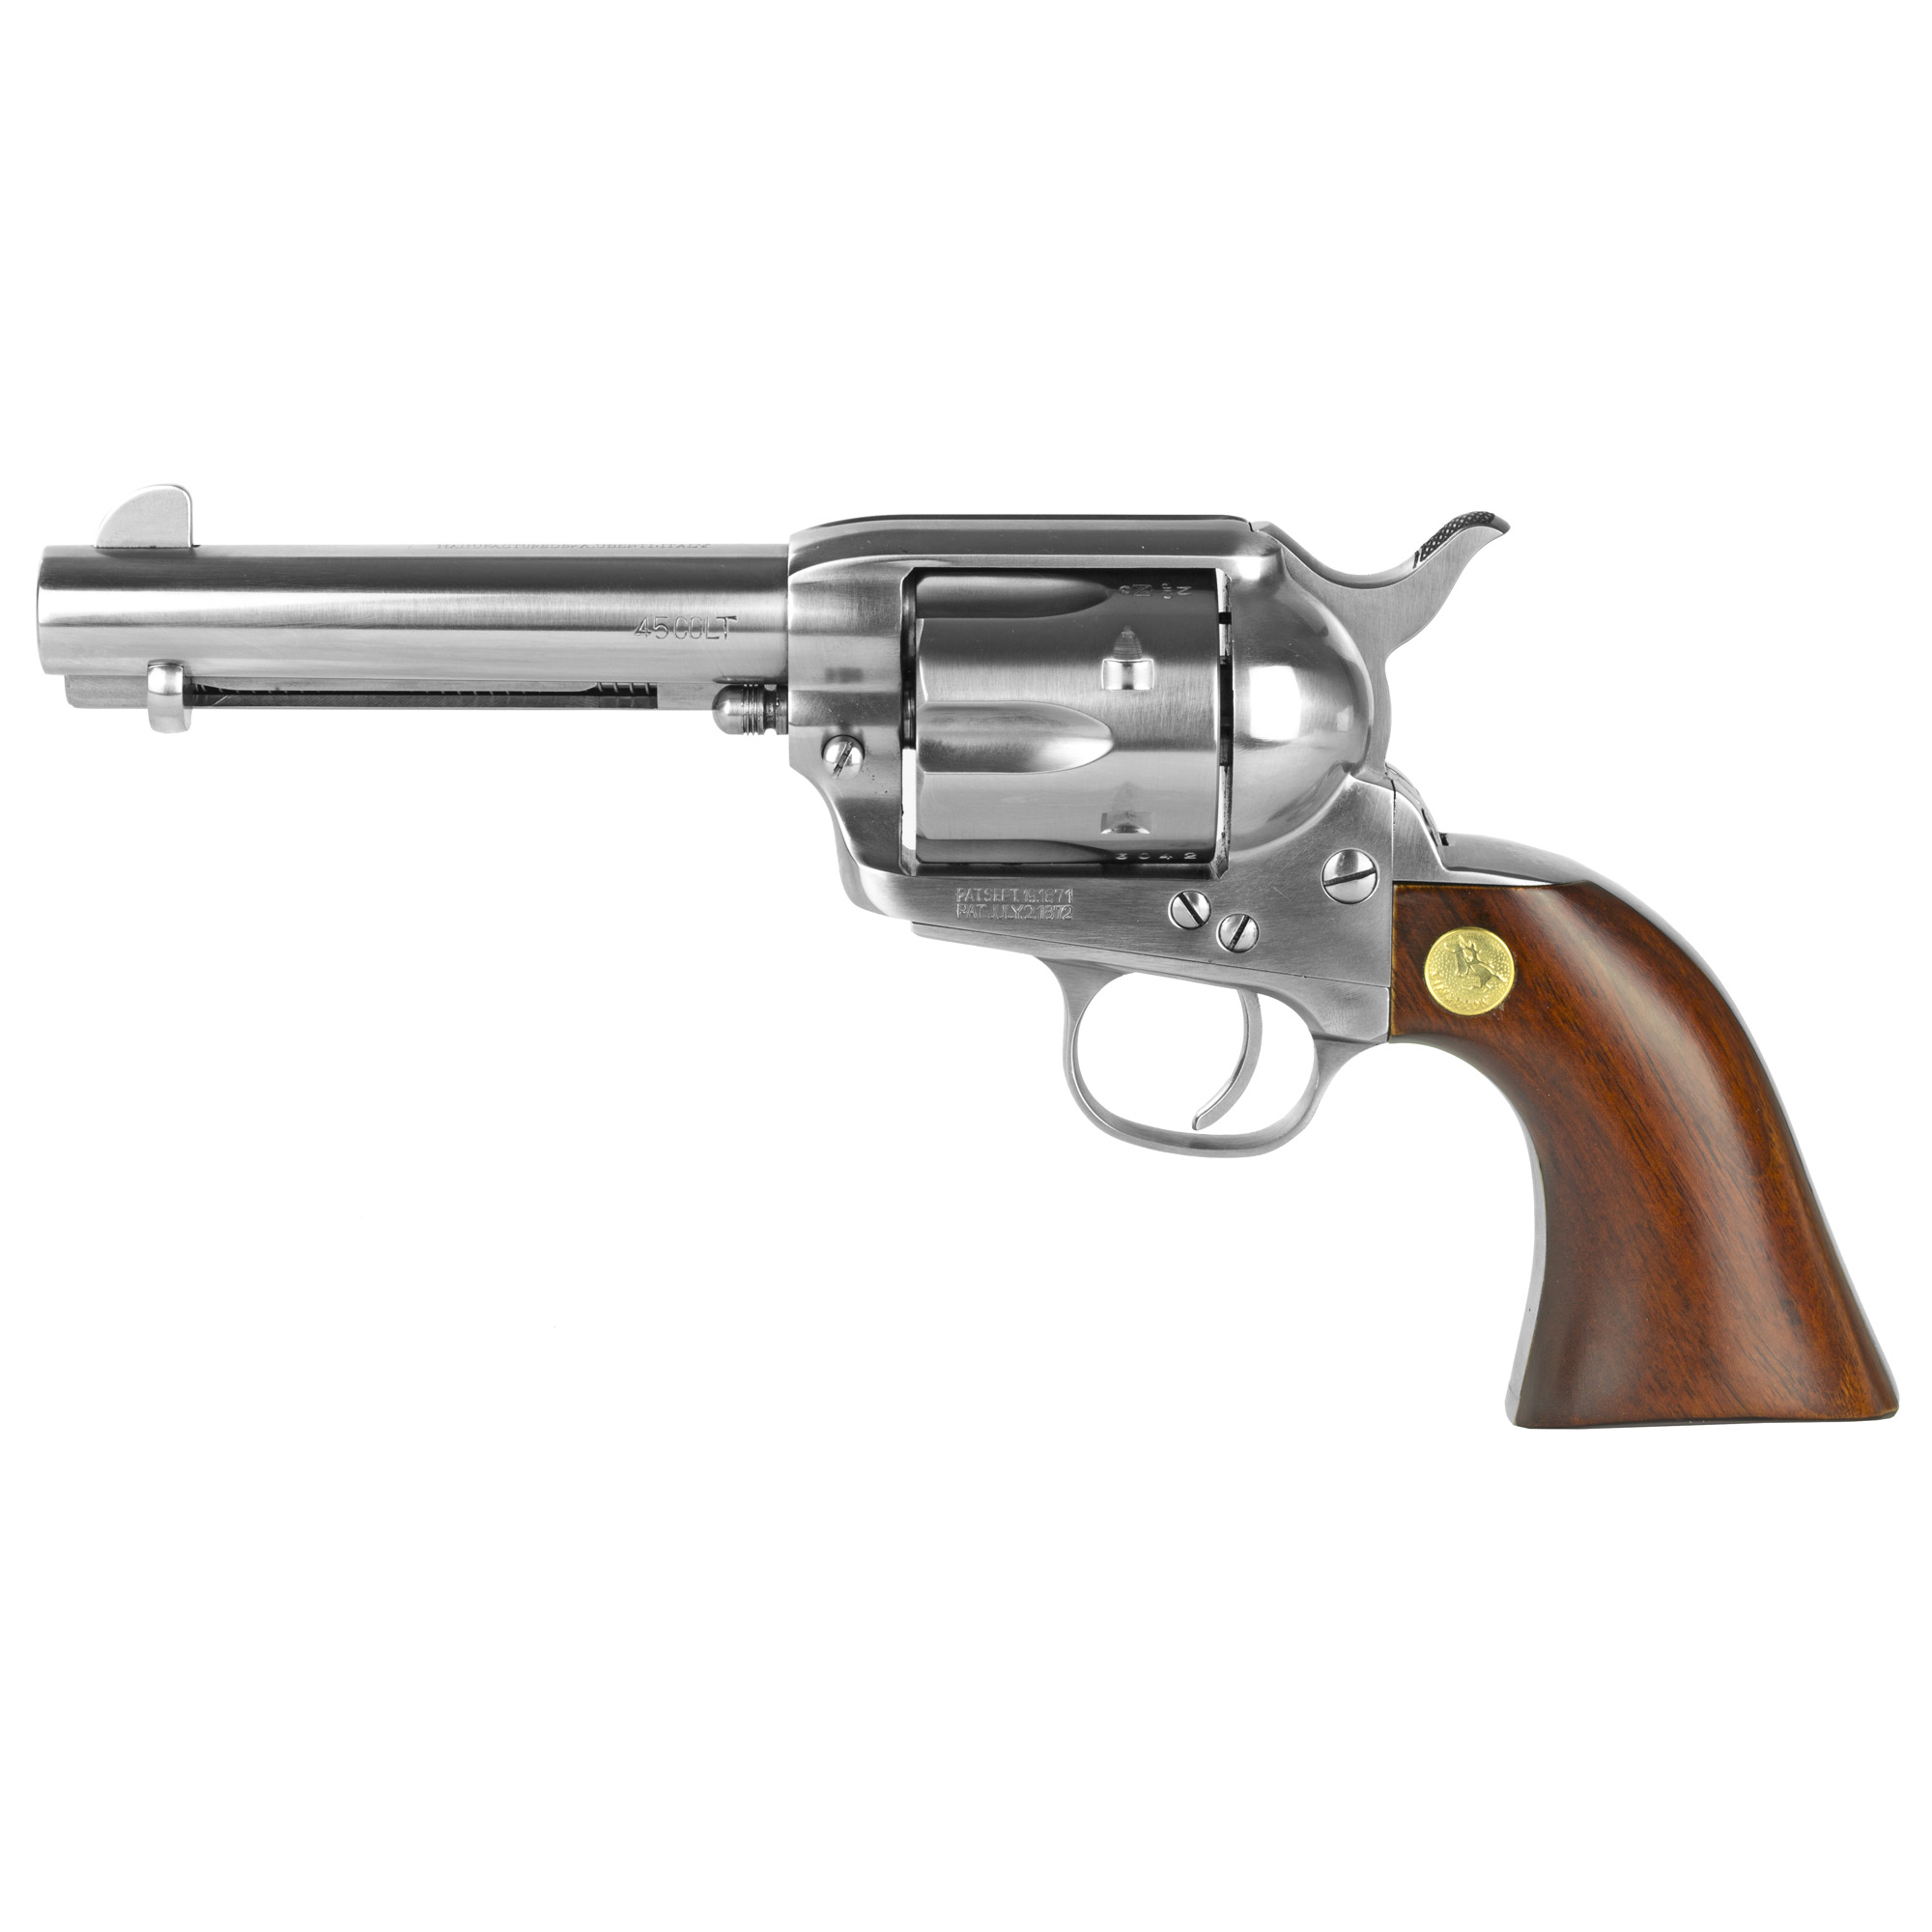 "The 1873 peacemaker-style revolver"" originally designed for the U.S. Cavalry"" quickly became the archetypical sixgun of the frontier. Made in a number of powerful chamberings in different barrel lengths"" besides the ""peacemaker"""" it was also known by other monikers like ""hogleg"""" smokewagon"""" and ""equalizer."" Considered as the most authentic and highest quality reproduction of the 1873 Colt"" Cimarron's replica was reproduced in every detail from an original 1873 single action in their antique collection"" and was not replicated by working simply from drawings"" as with previous reproductions."